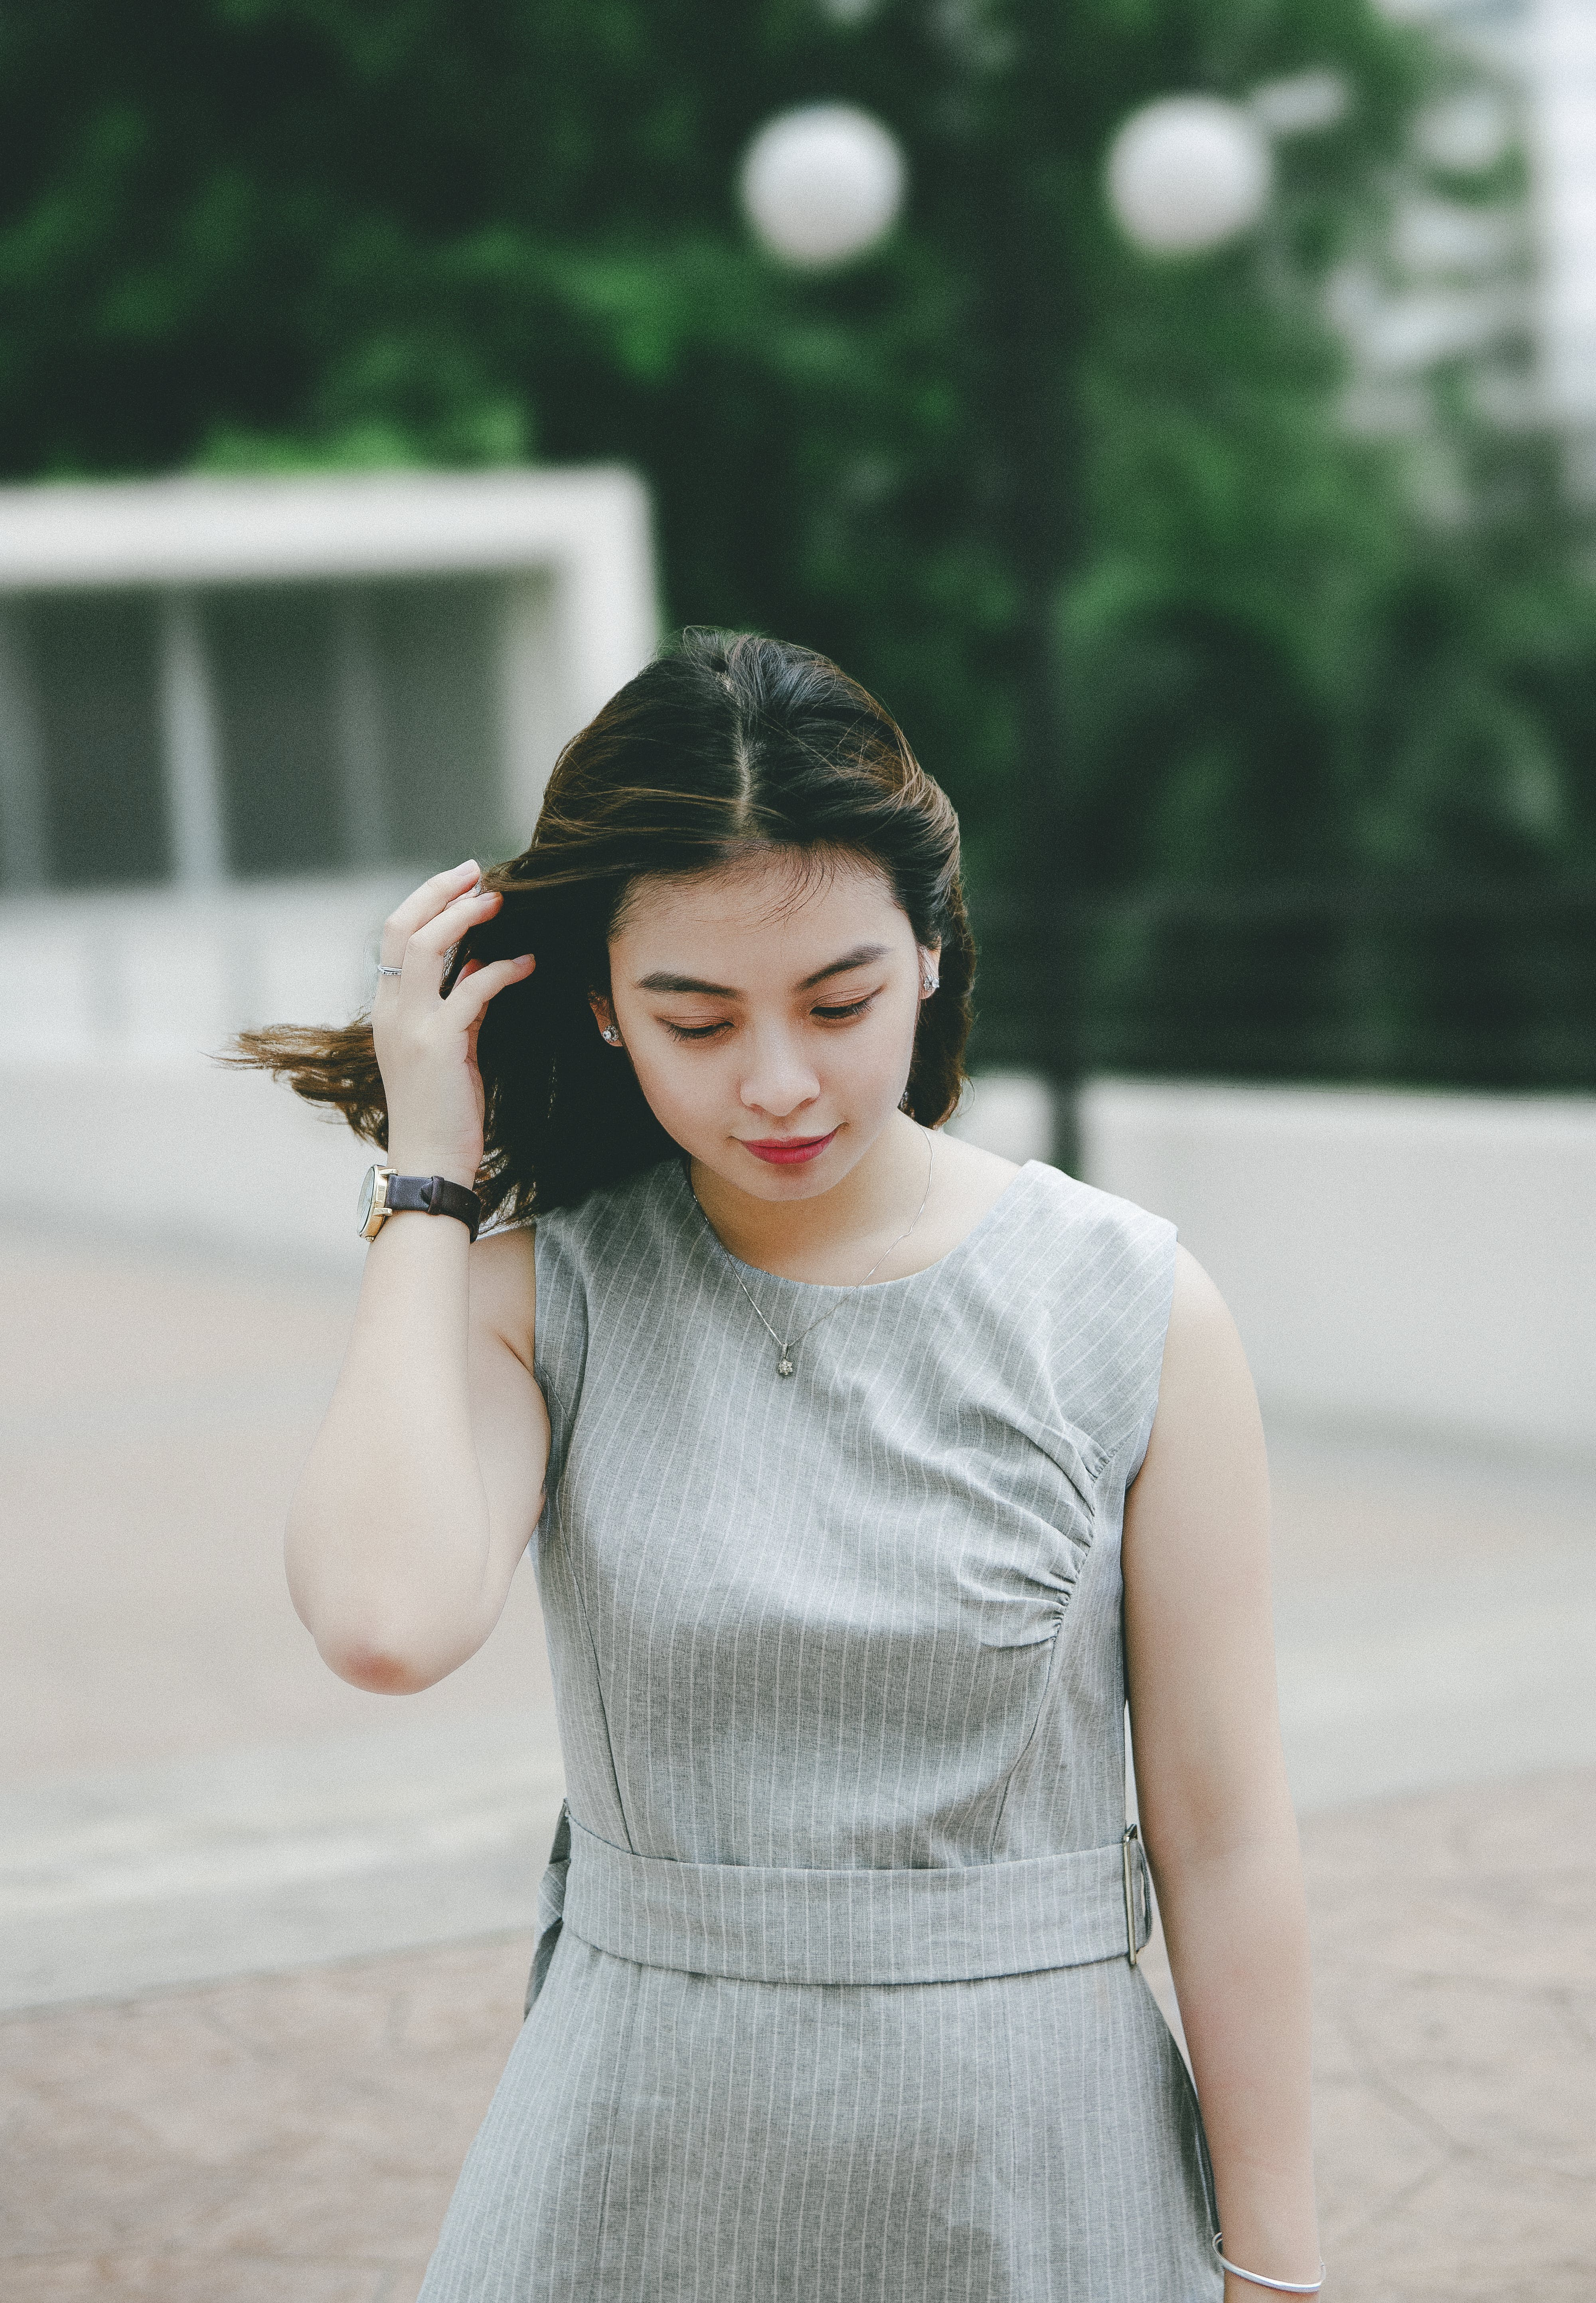 Selective Focus Photography of Woman Wearing Gray Striped Sleeveless Dress Holding Hair